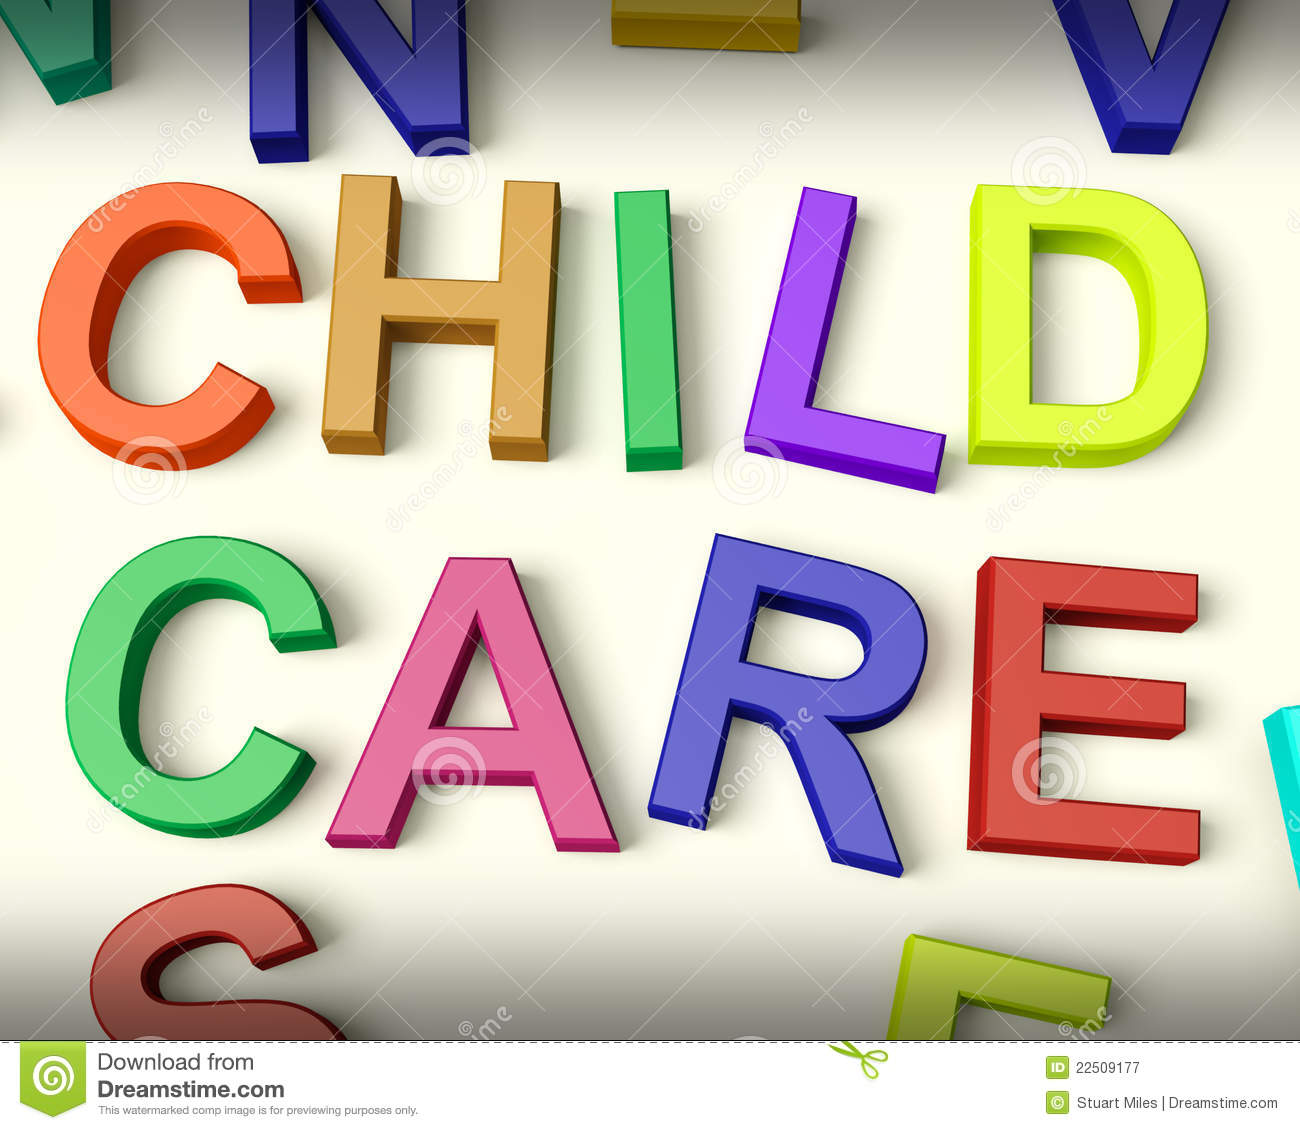 Child Care Written In Multicolored Kids Letters Royalty Free Stock ...